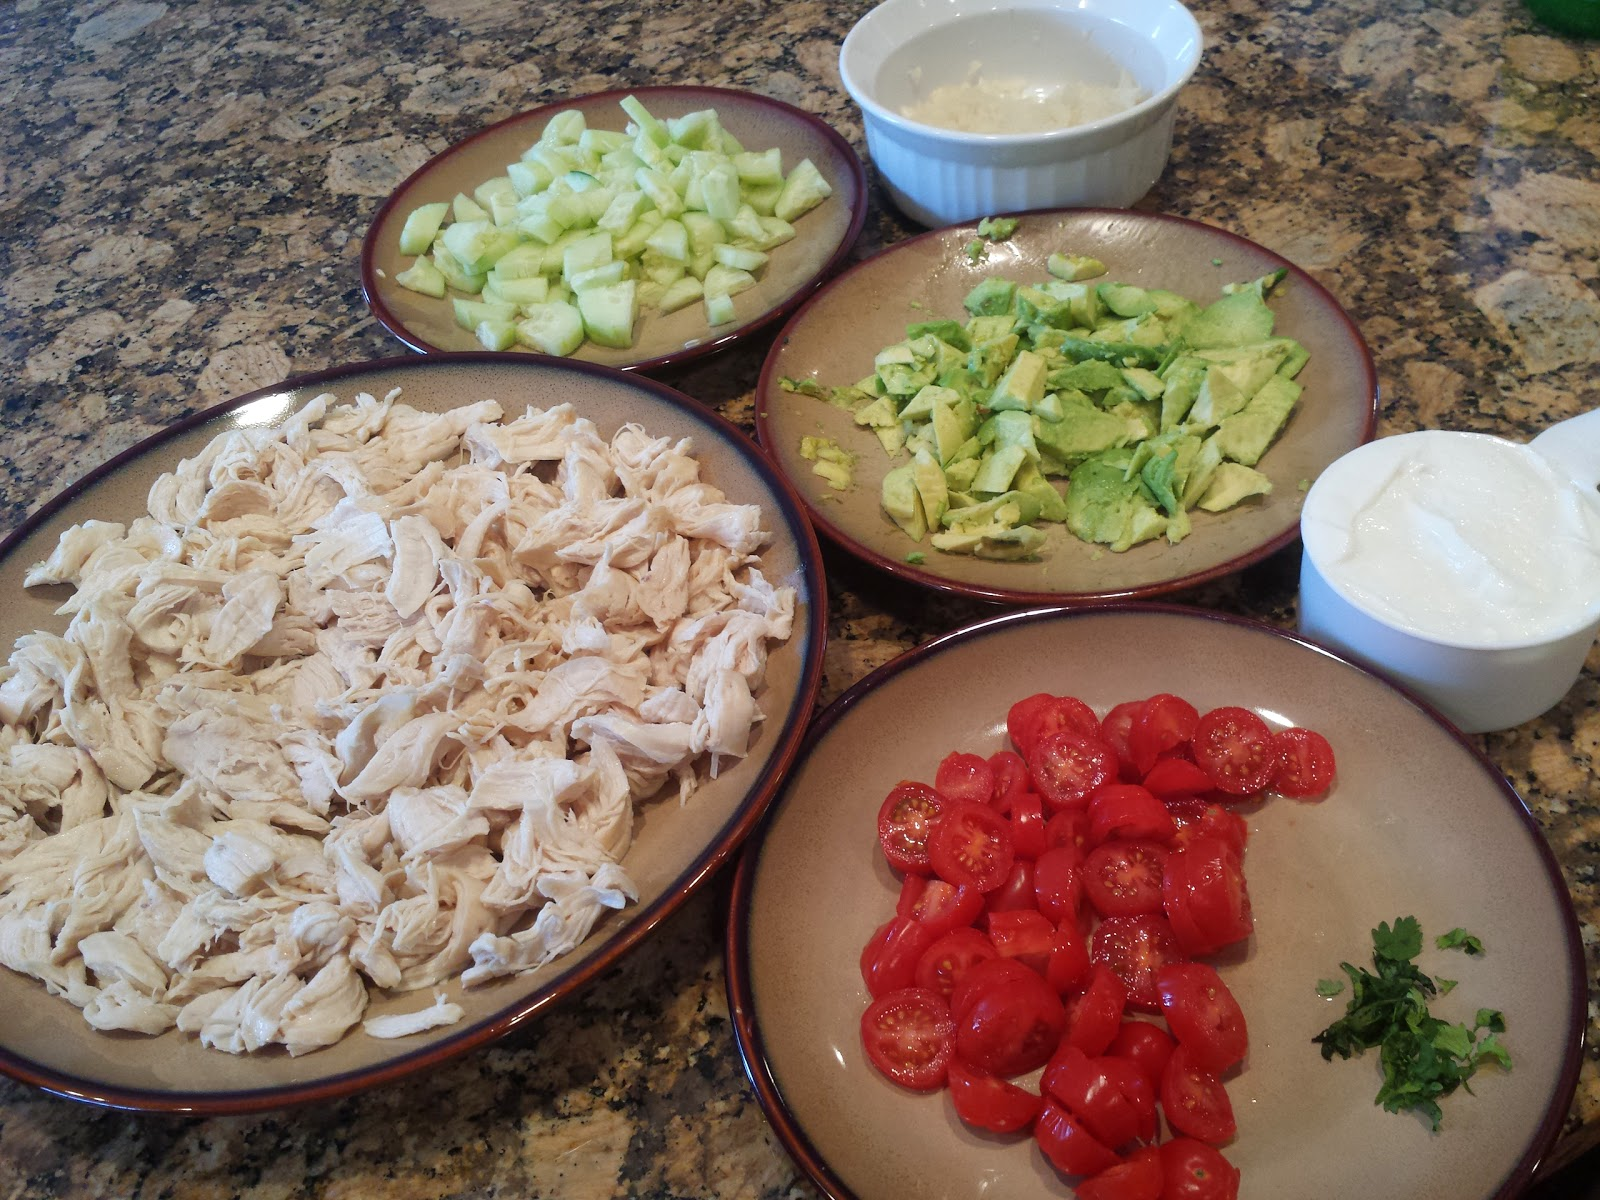 Deidra Penrose, Chicken salad, Cucumber and Avocado salad, clean chicken salad, healthy chicken wrap, weight loss, clean eating, p90X3 meal plan, T25 meal plan, Team beach body, 6 star elite diamond beach body coach, healthy lunch ideas